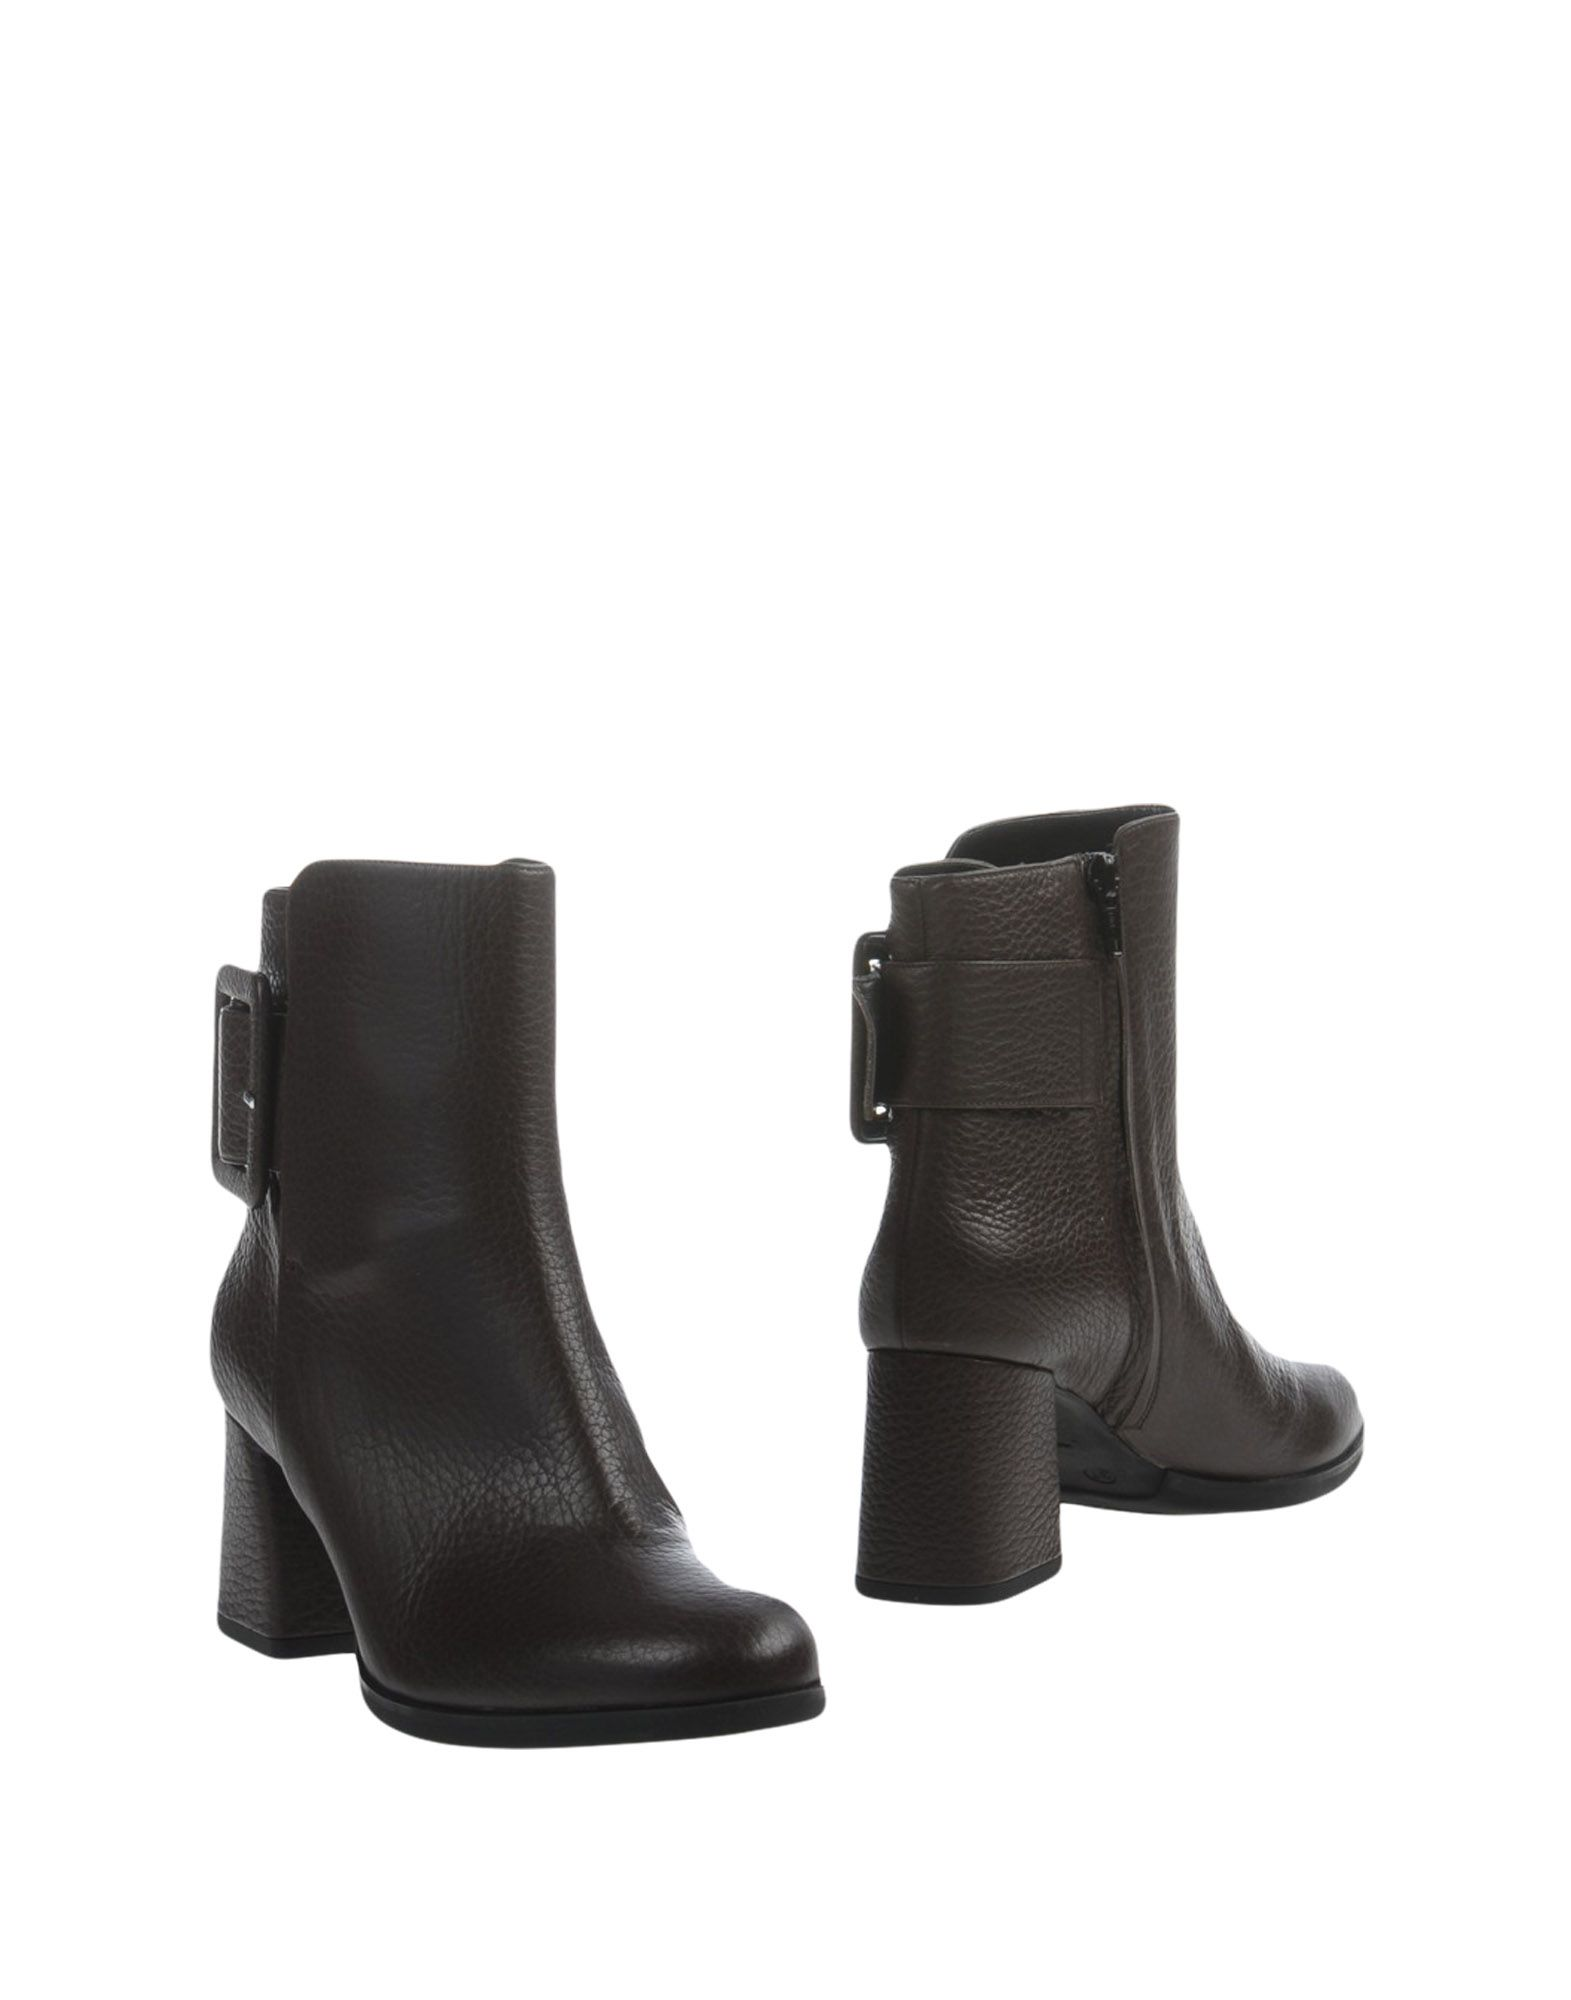 Bottine Gianni Marra Femme - Bottines Gianni Marra sur